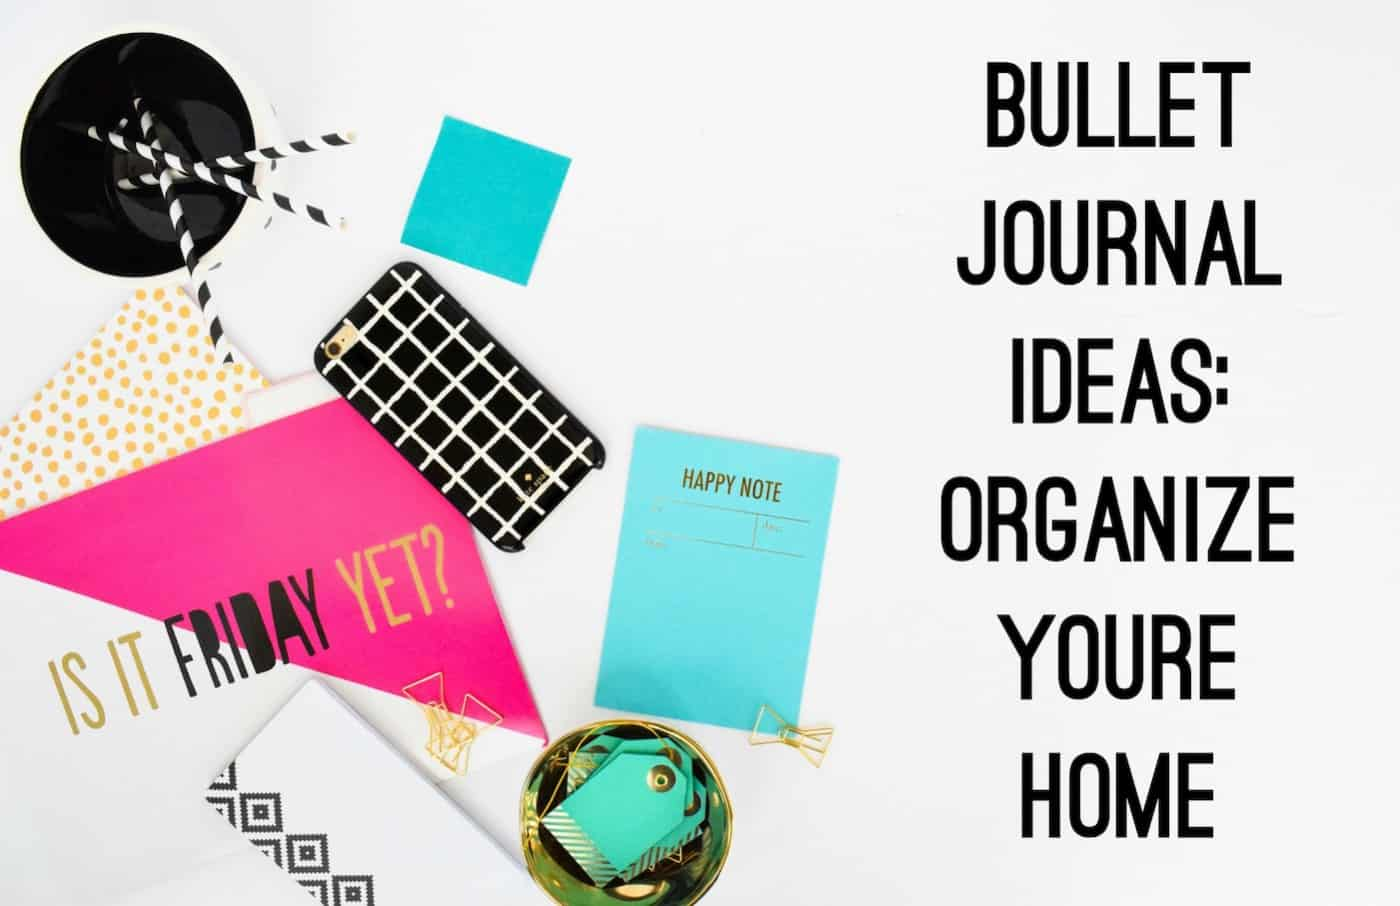 Check out one of these brilliant bullet journal ideas - learn to use your journal for home organization! Declutter, clean, and more with these great tips.